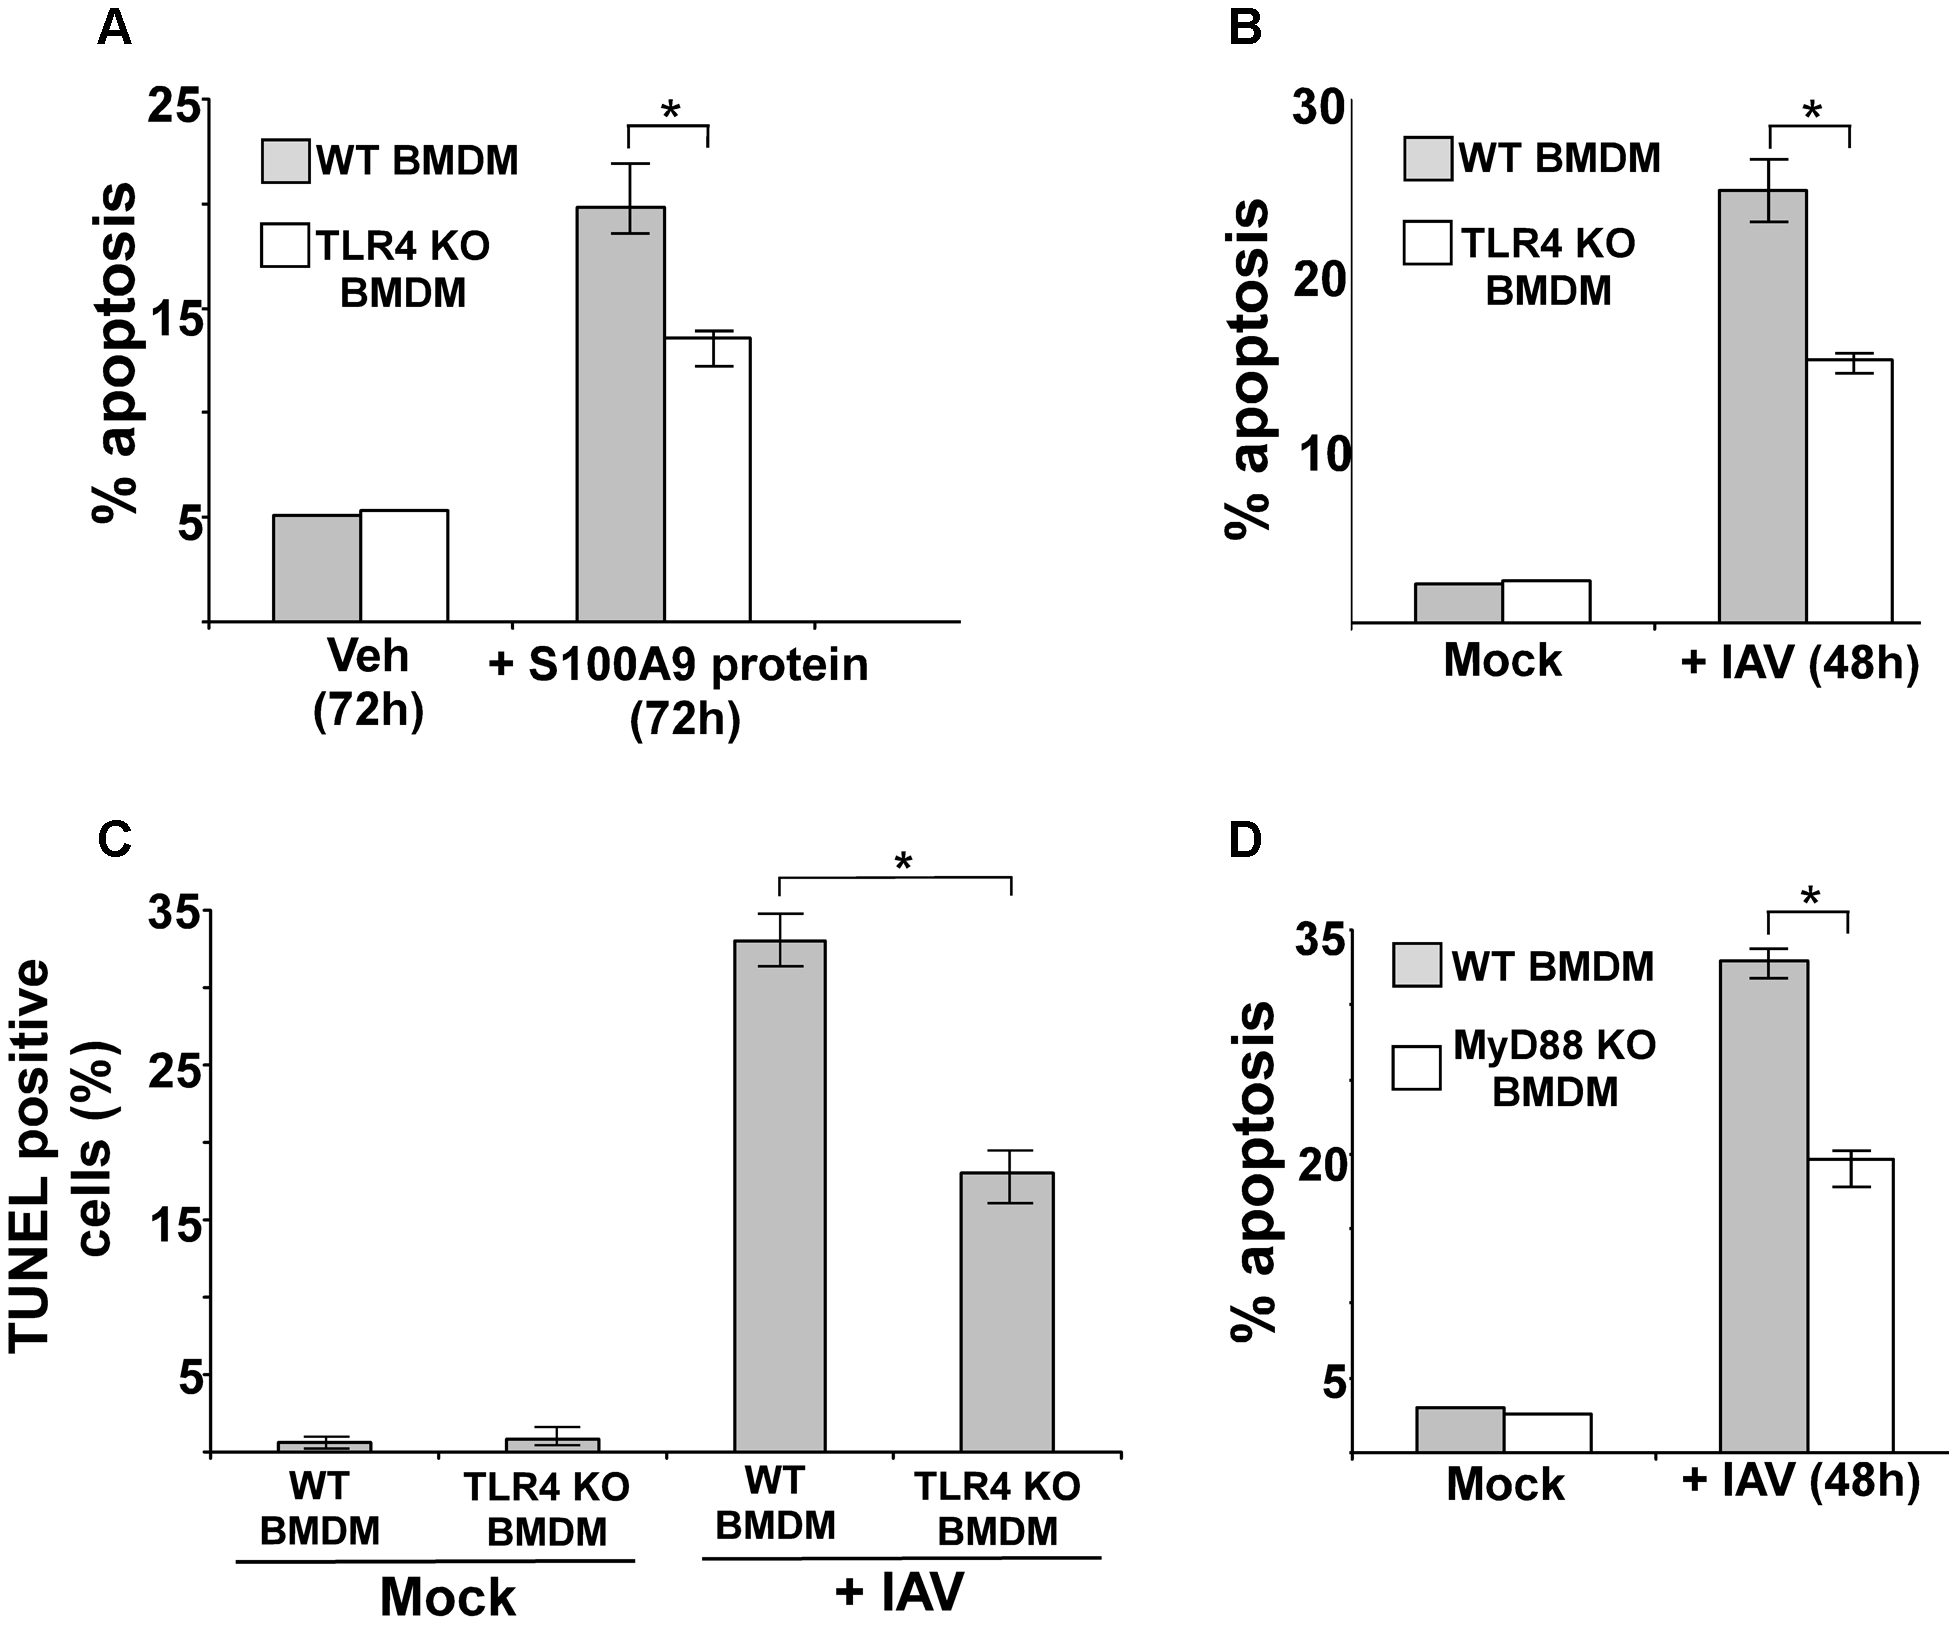 Activated TLR4/MyD88 pathway promotes S100A9-mediated apoptosis and is required for optimal apoptosis of IAV infected cells.